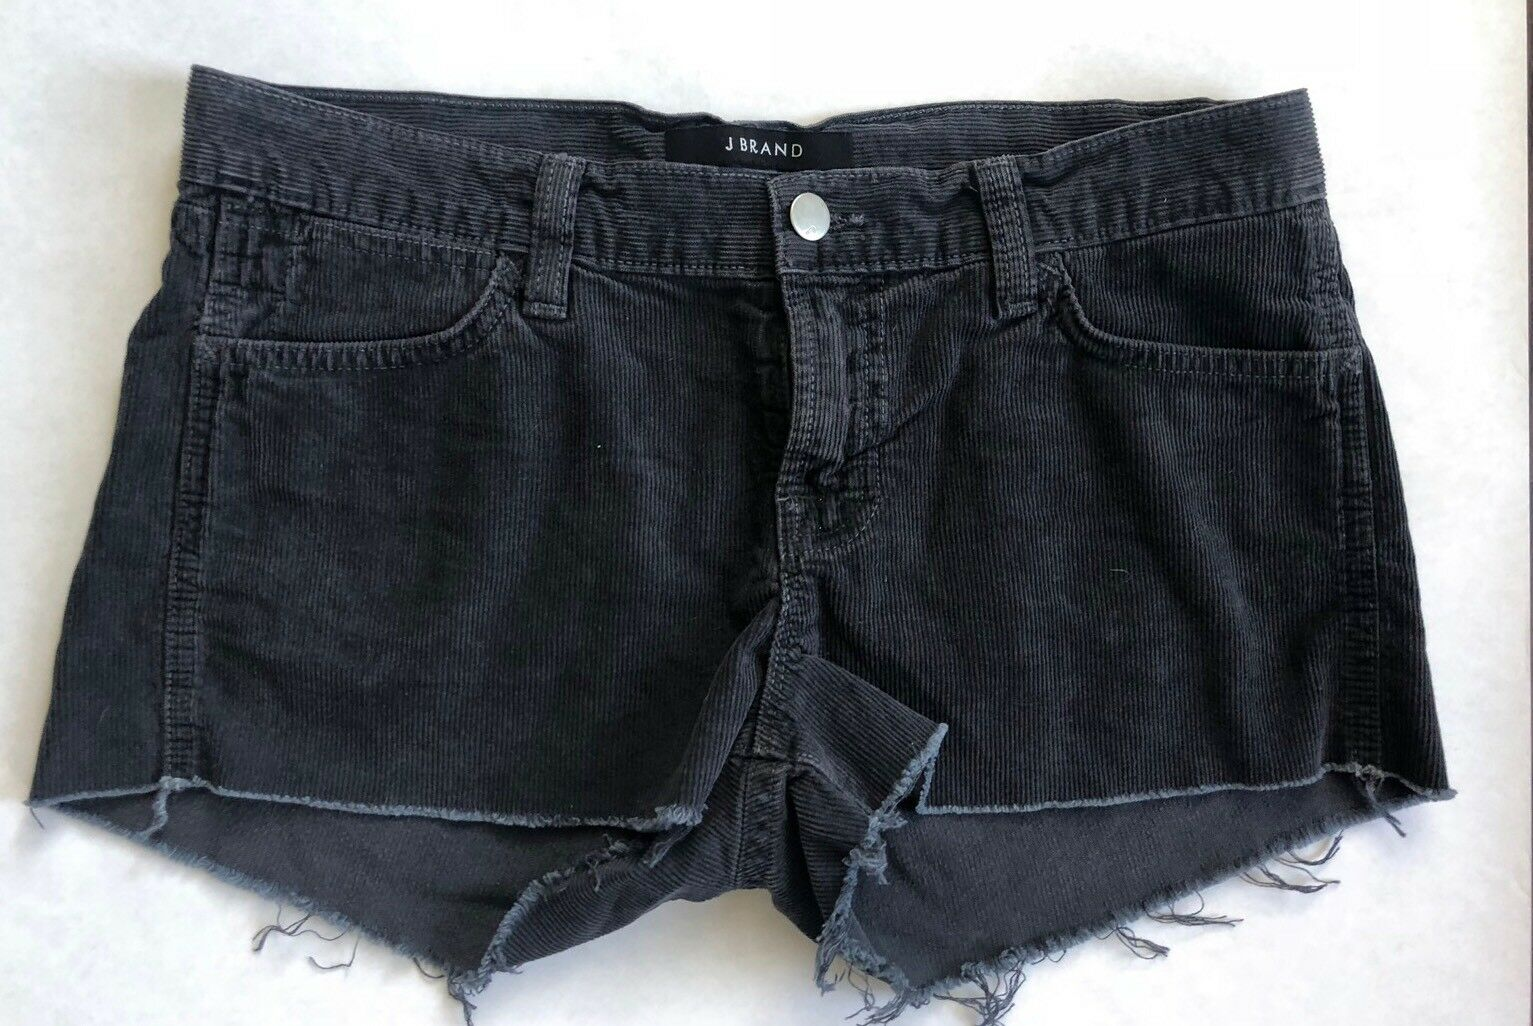 J Brand Cut Off Cord Shorts in Vintage Basin - Size 26